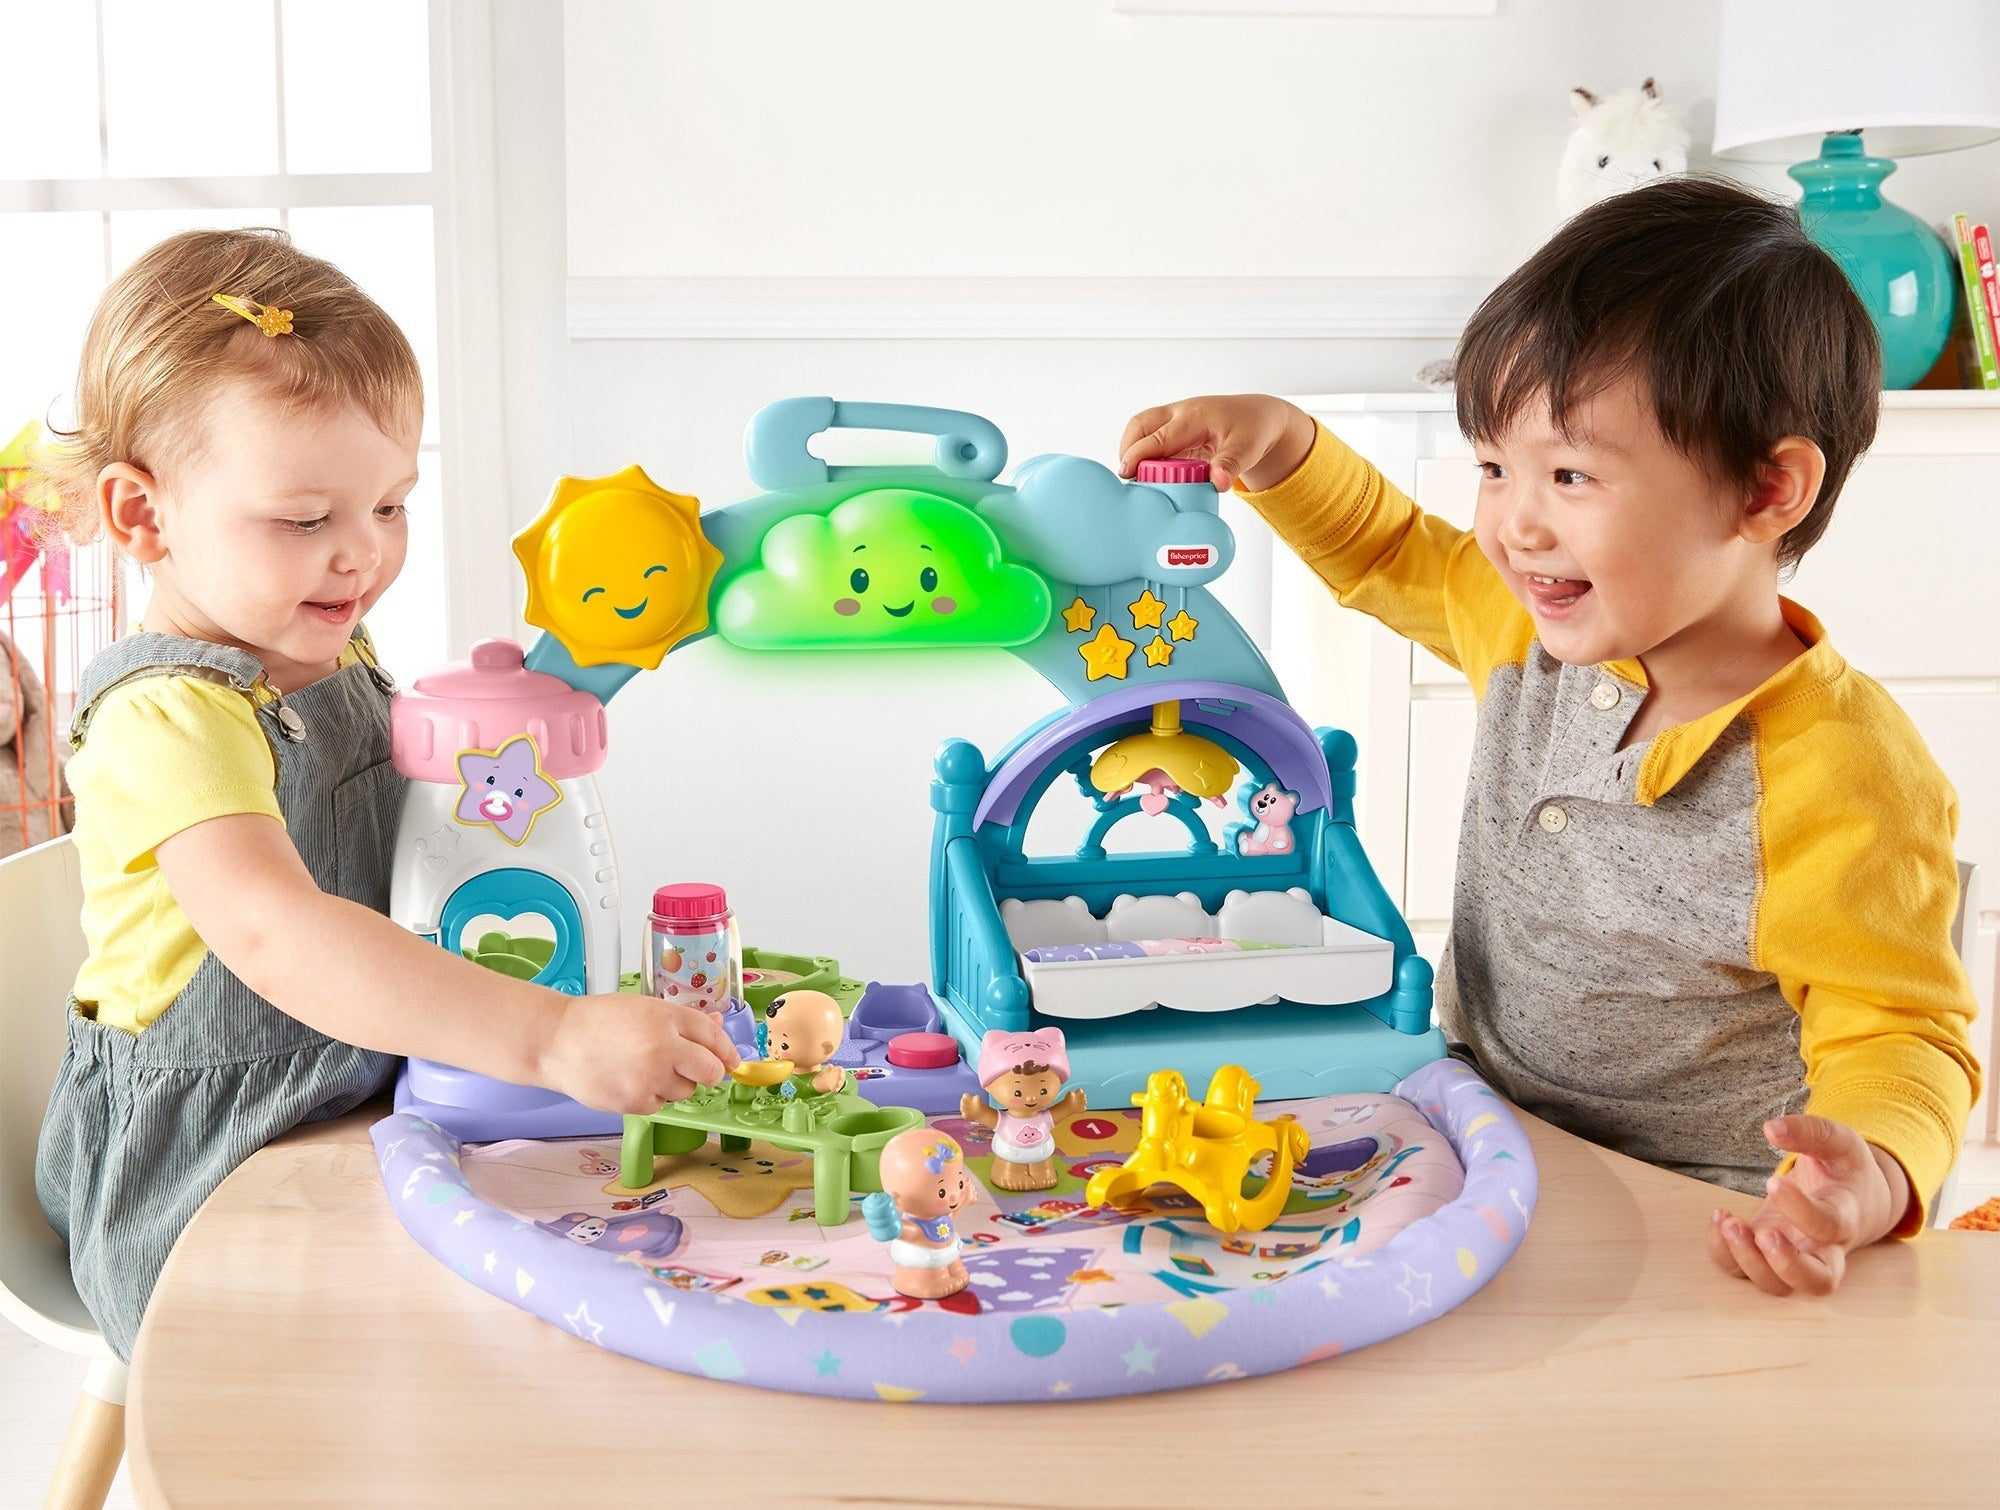 kids playing with a plastic playset with a soft bottom mat and interactive attachments